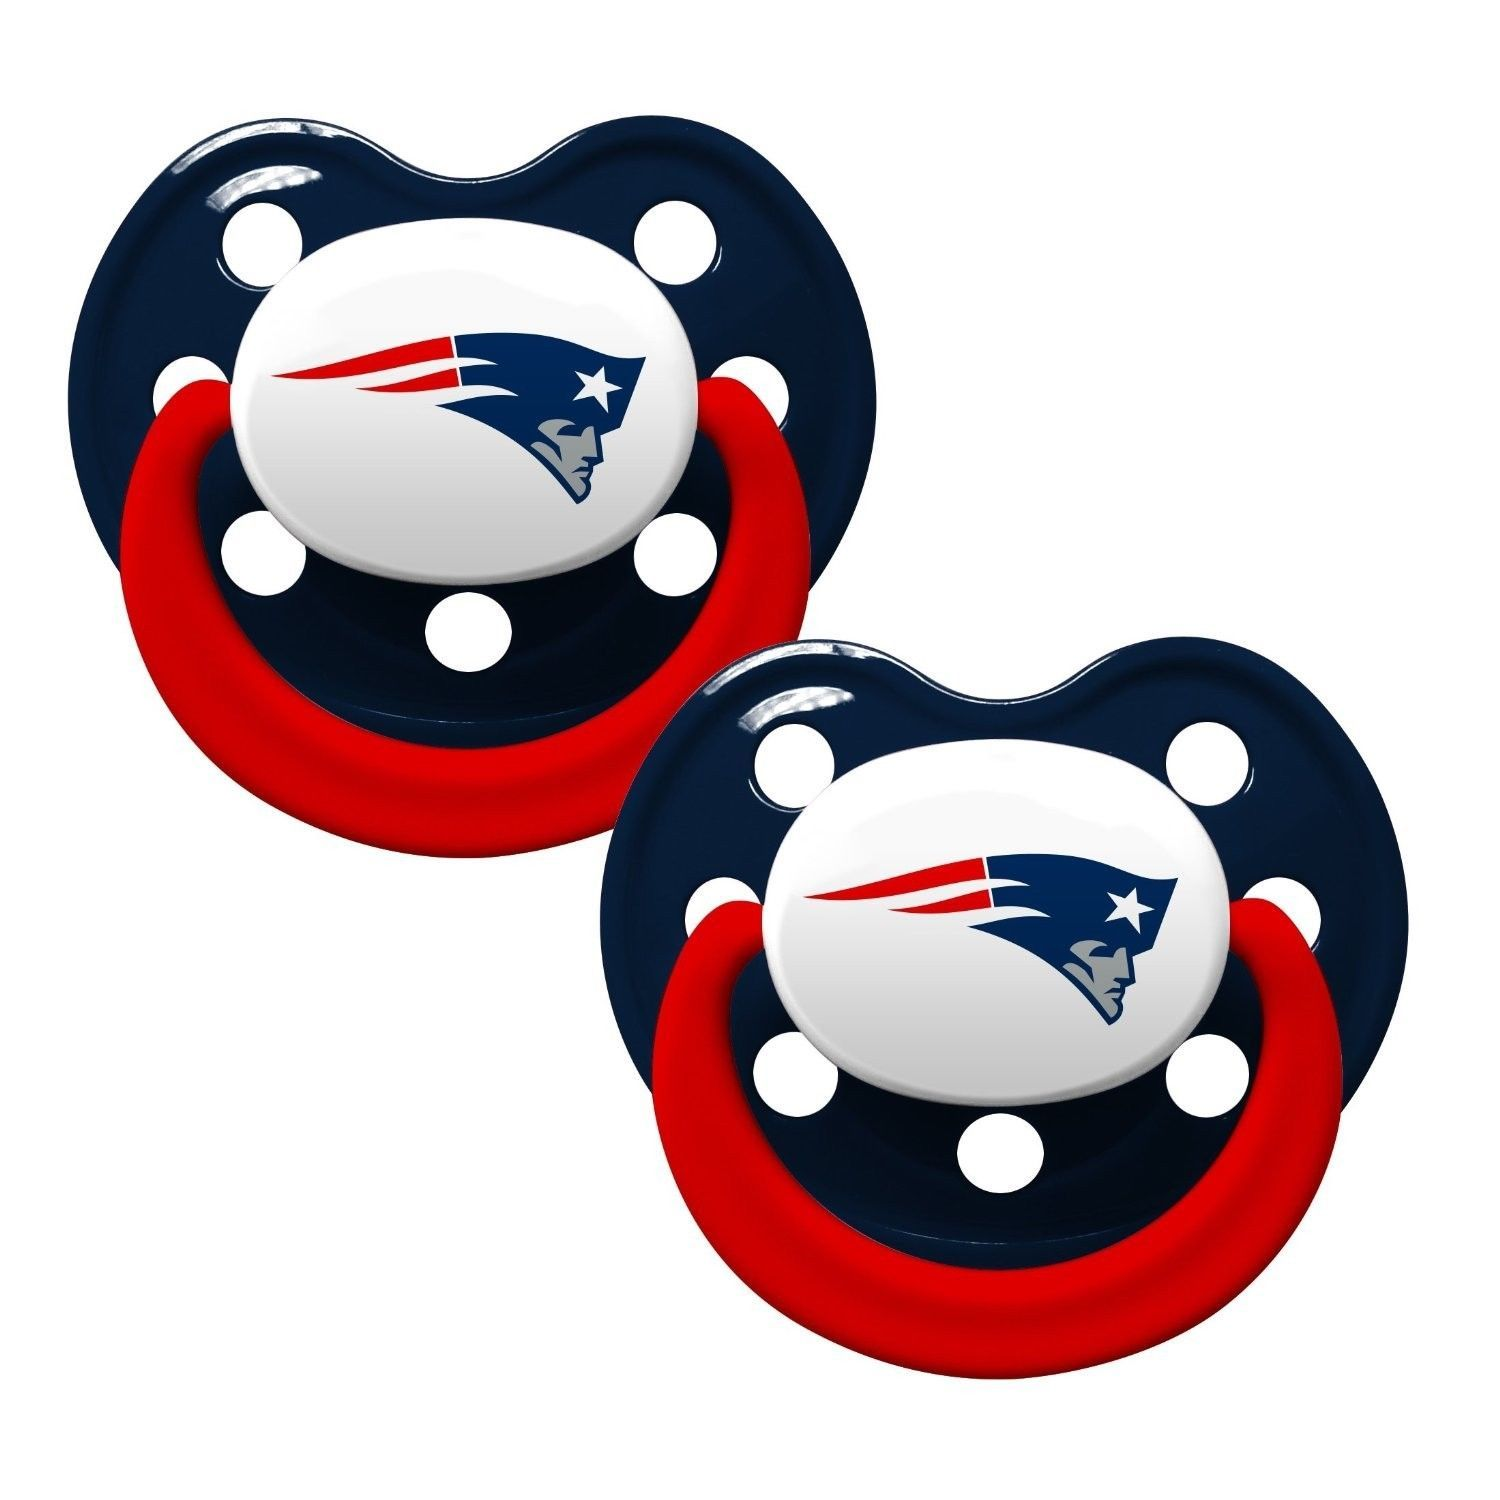 NEW ENGLAND PATRIOTS 2-PACK BABY INFANT PACIFIERS NFL FOOTBALL